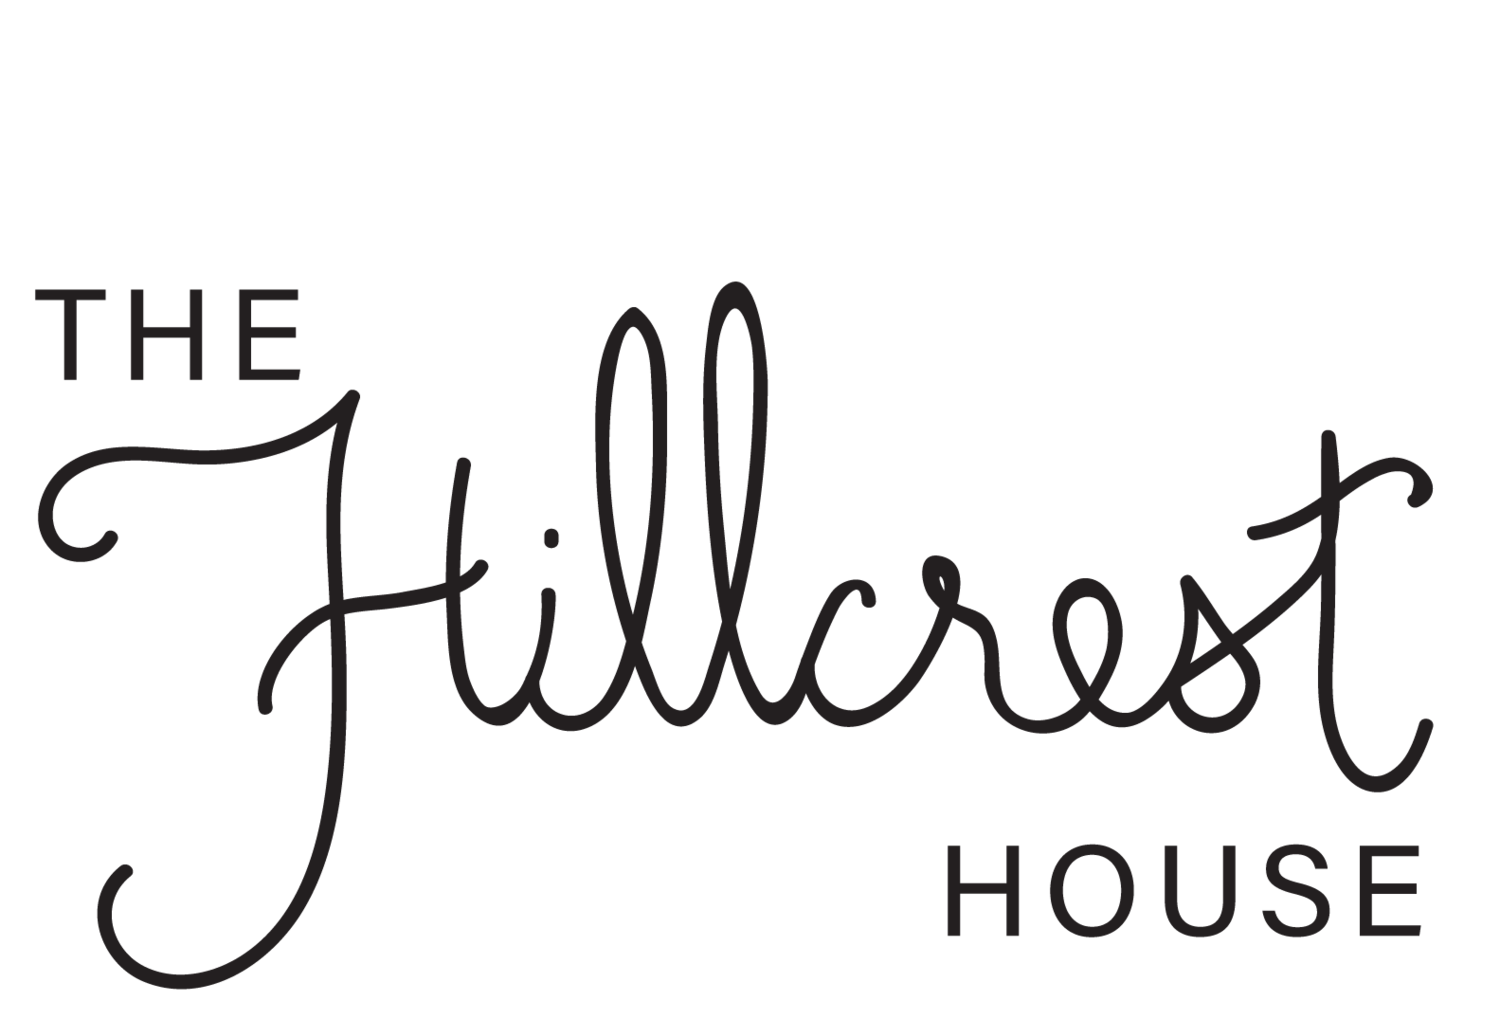 The Hillcrest House